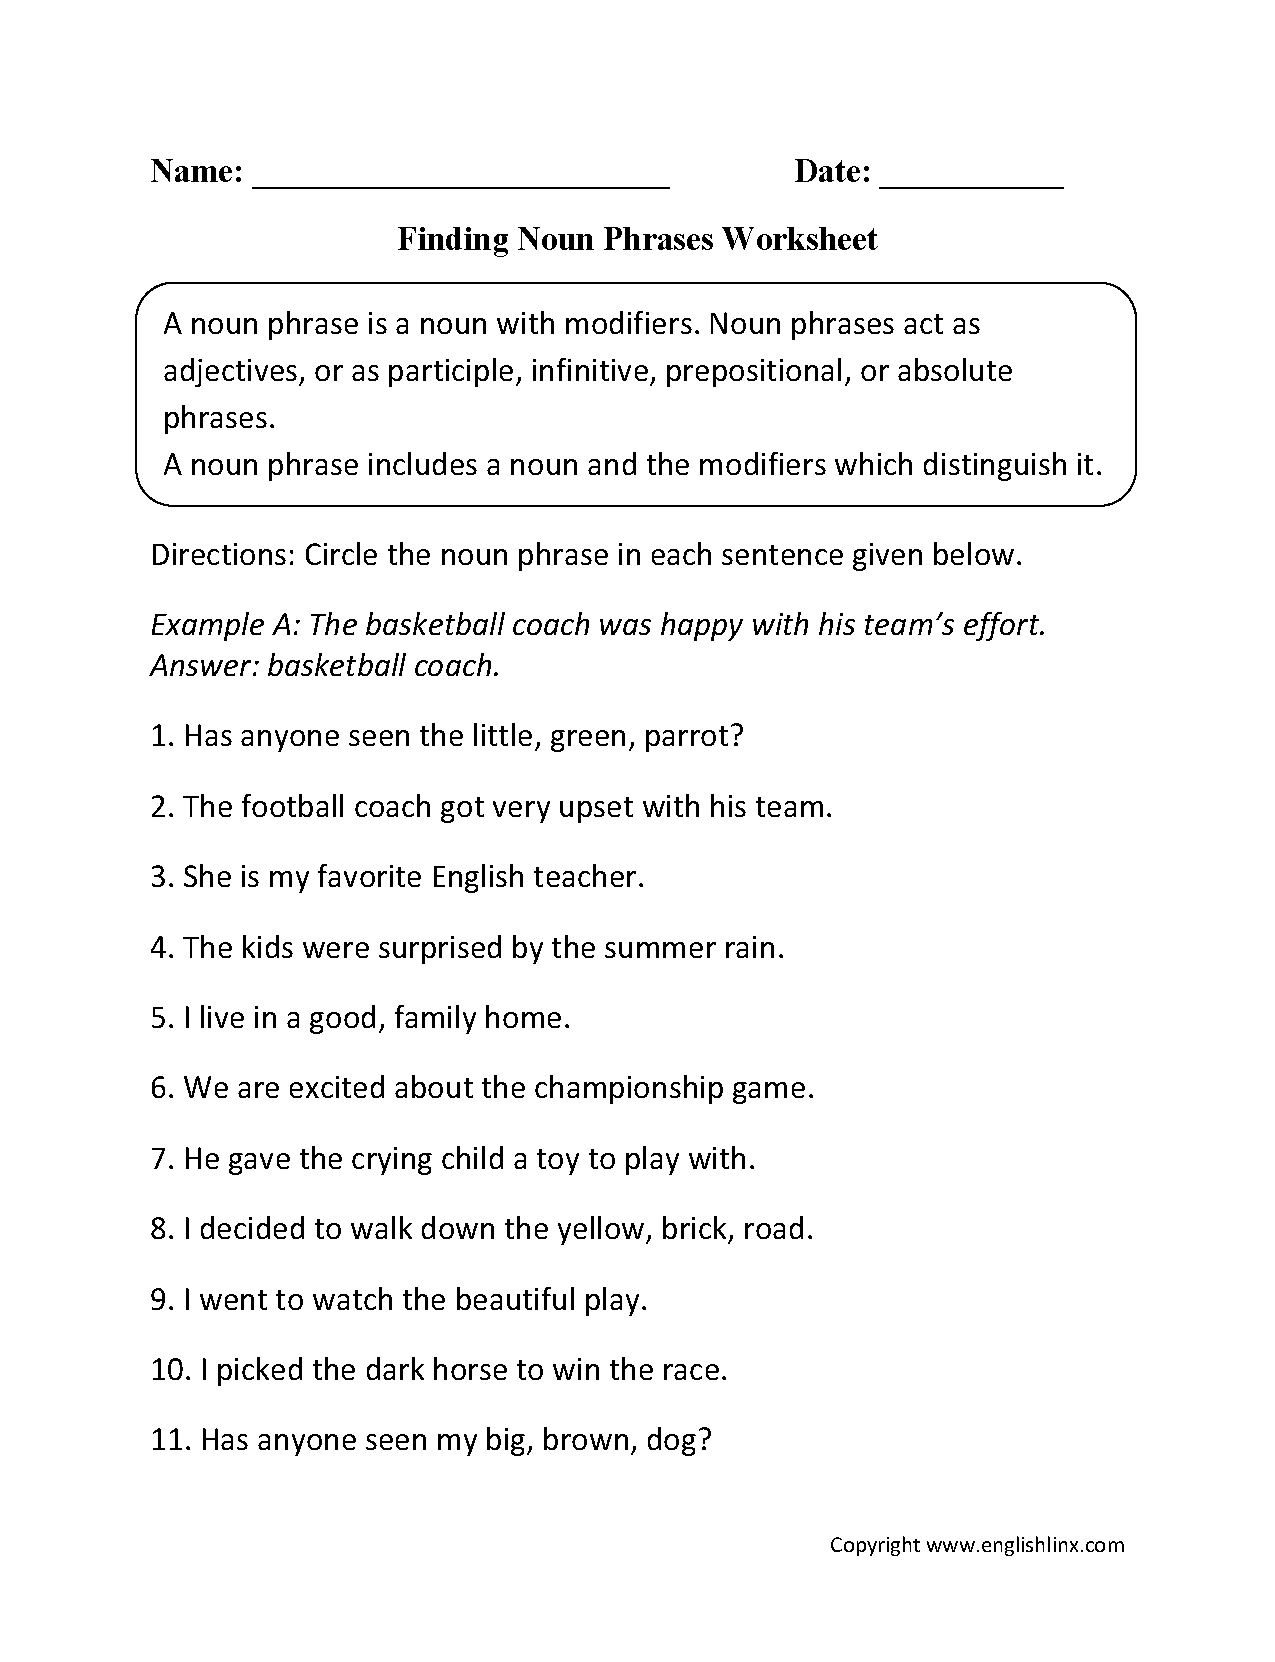 Printables Worksheets For Nouns englishlinx com nouns worksheets noun phrases worksheets